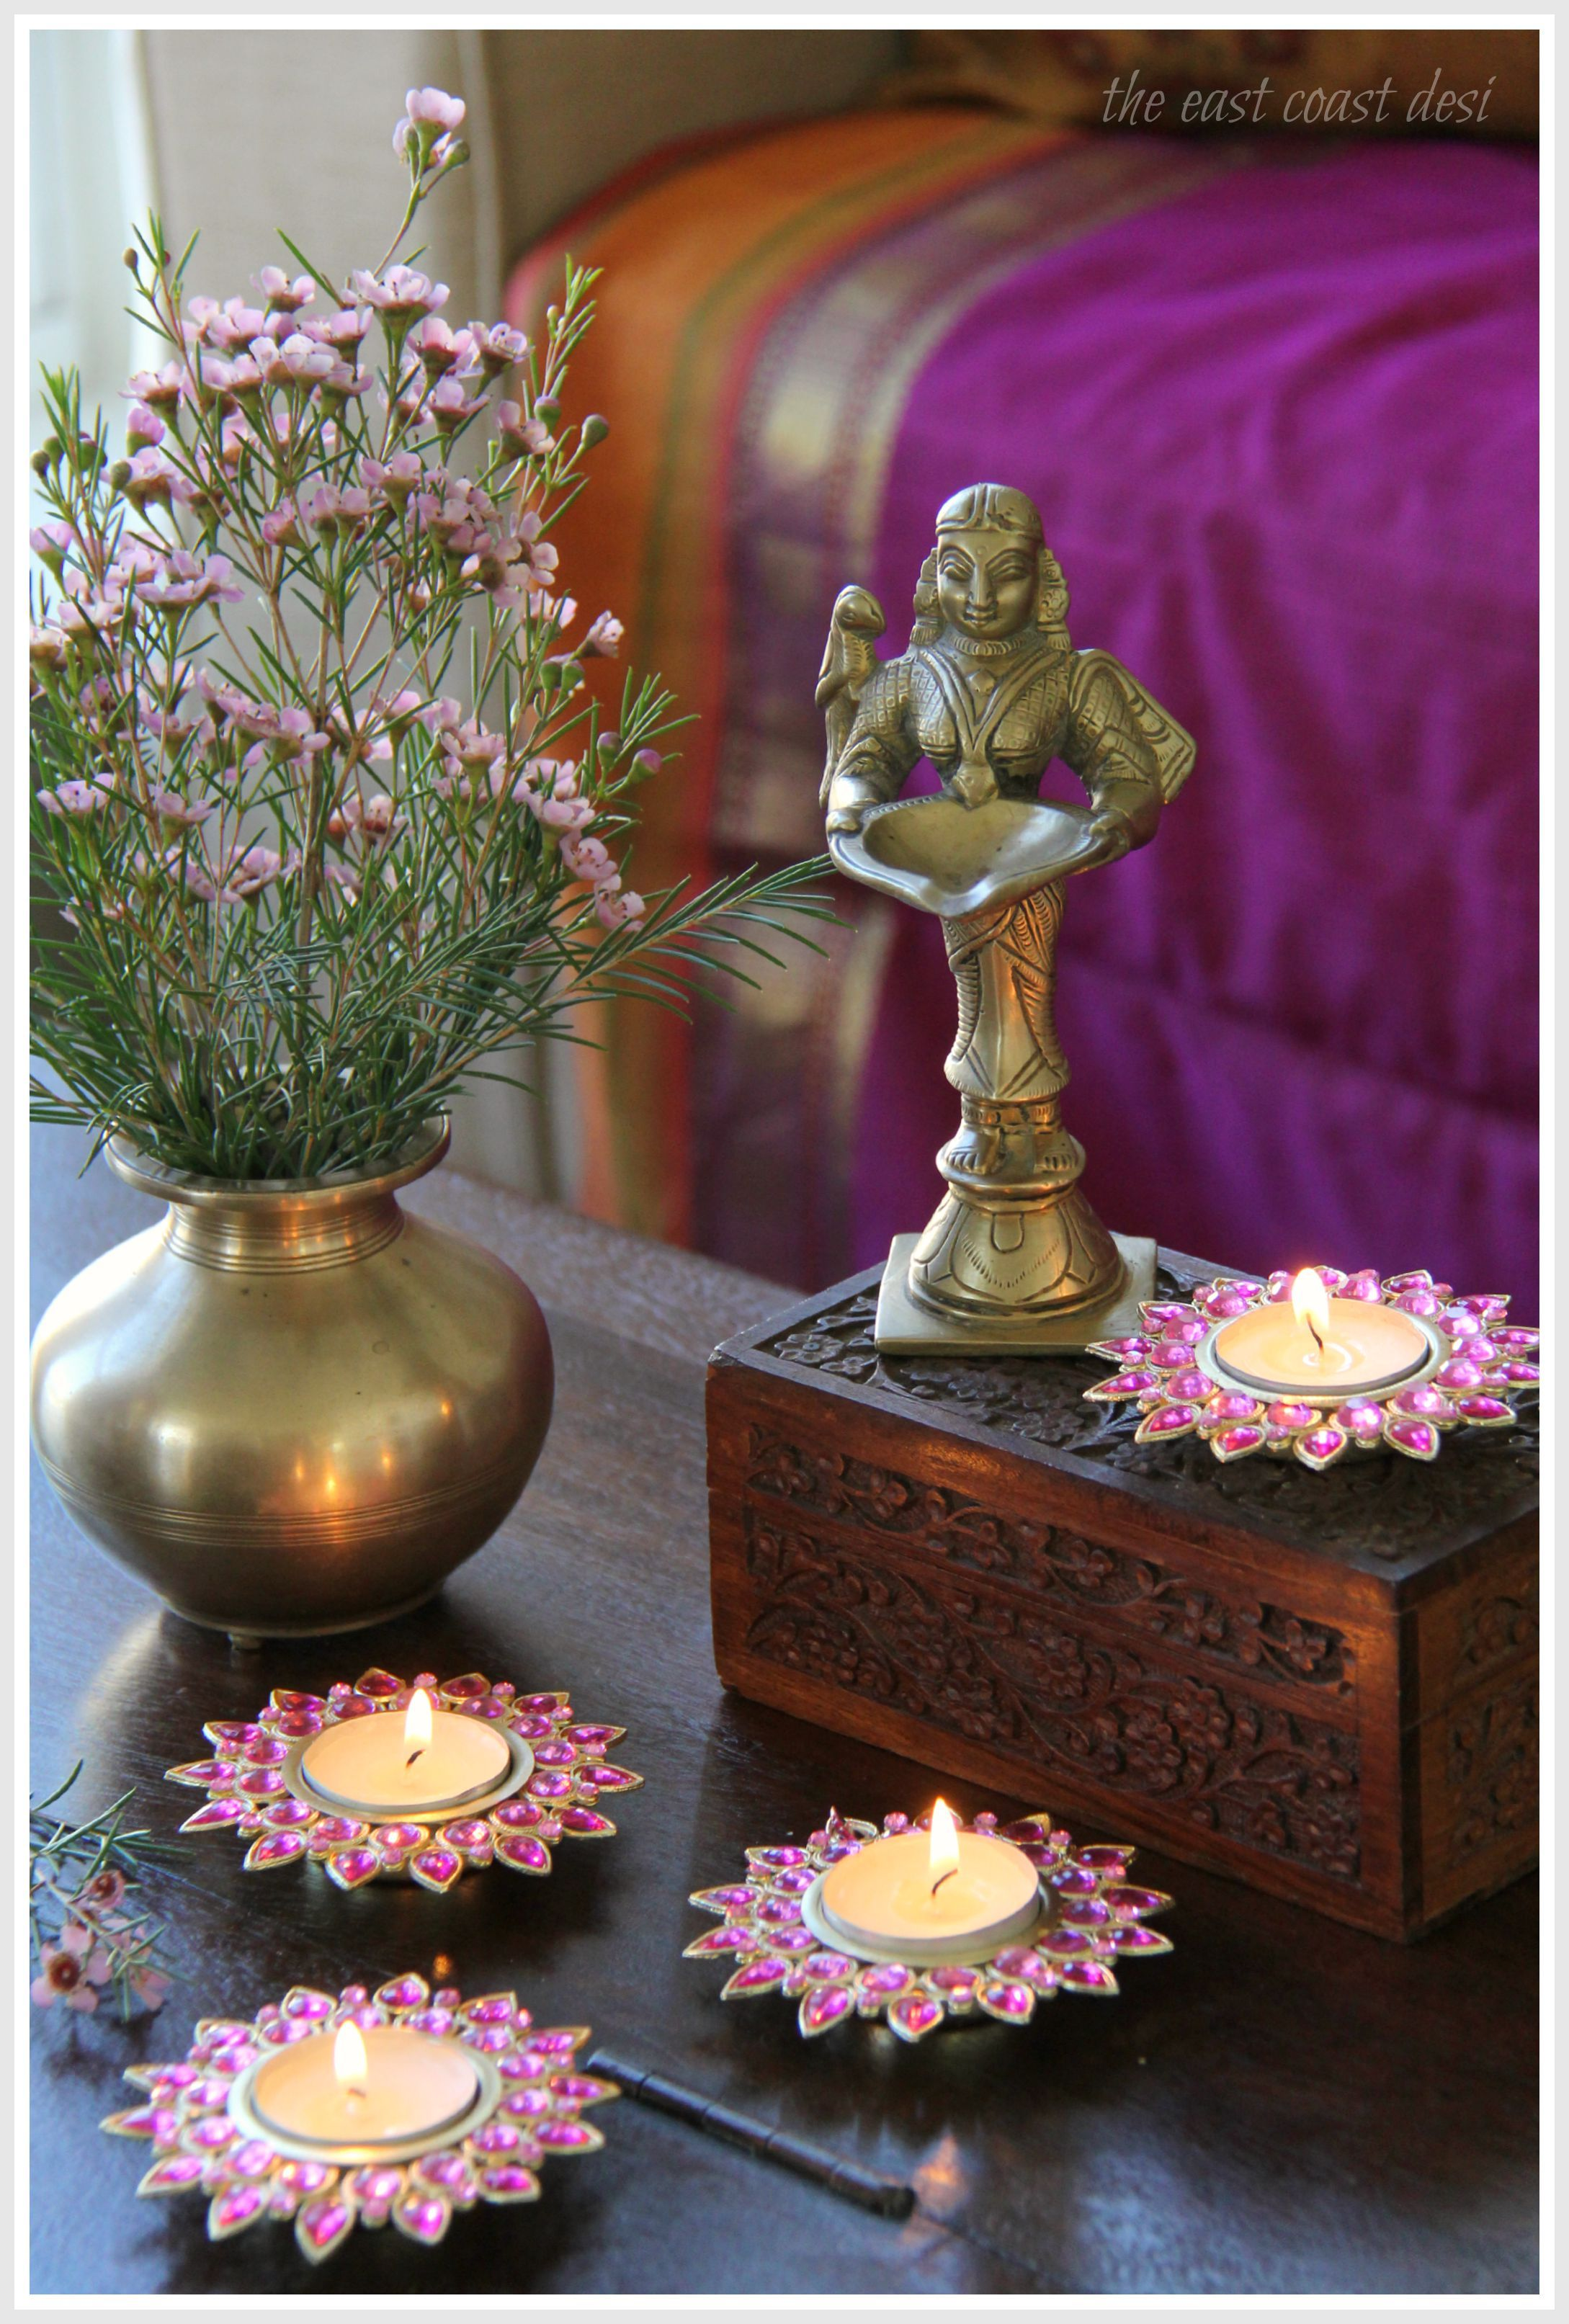 T lights perfect for diwali decor image for Simple diwali home decorations